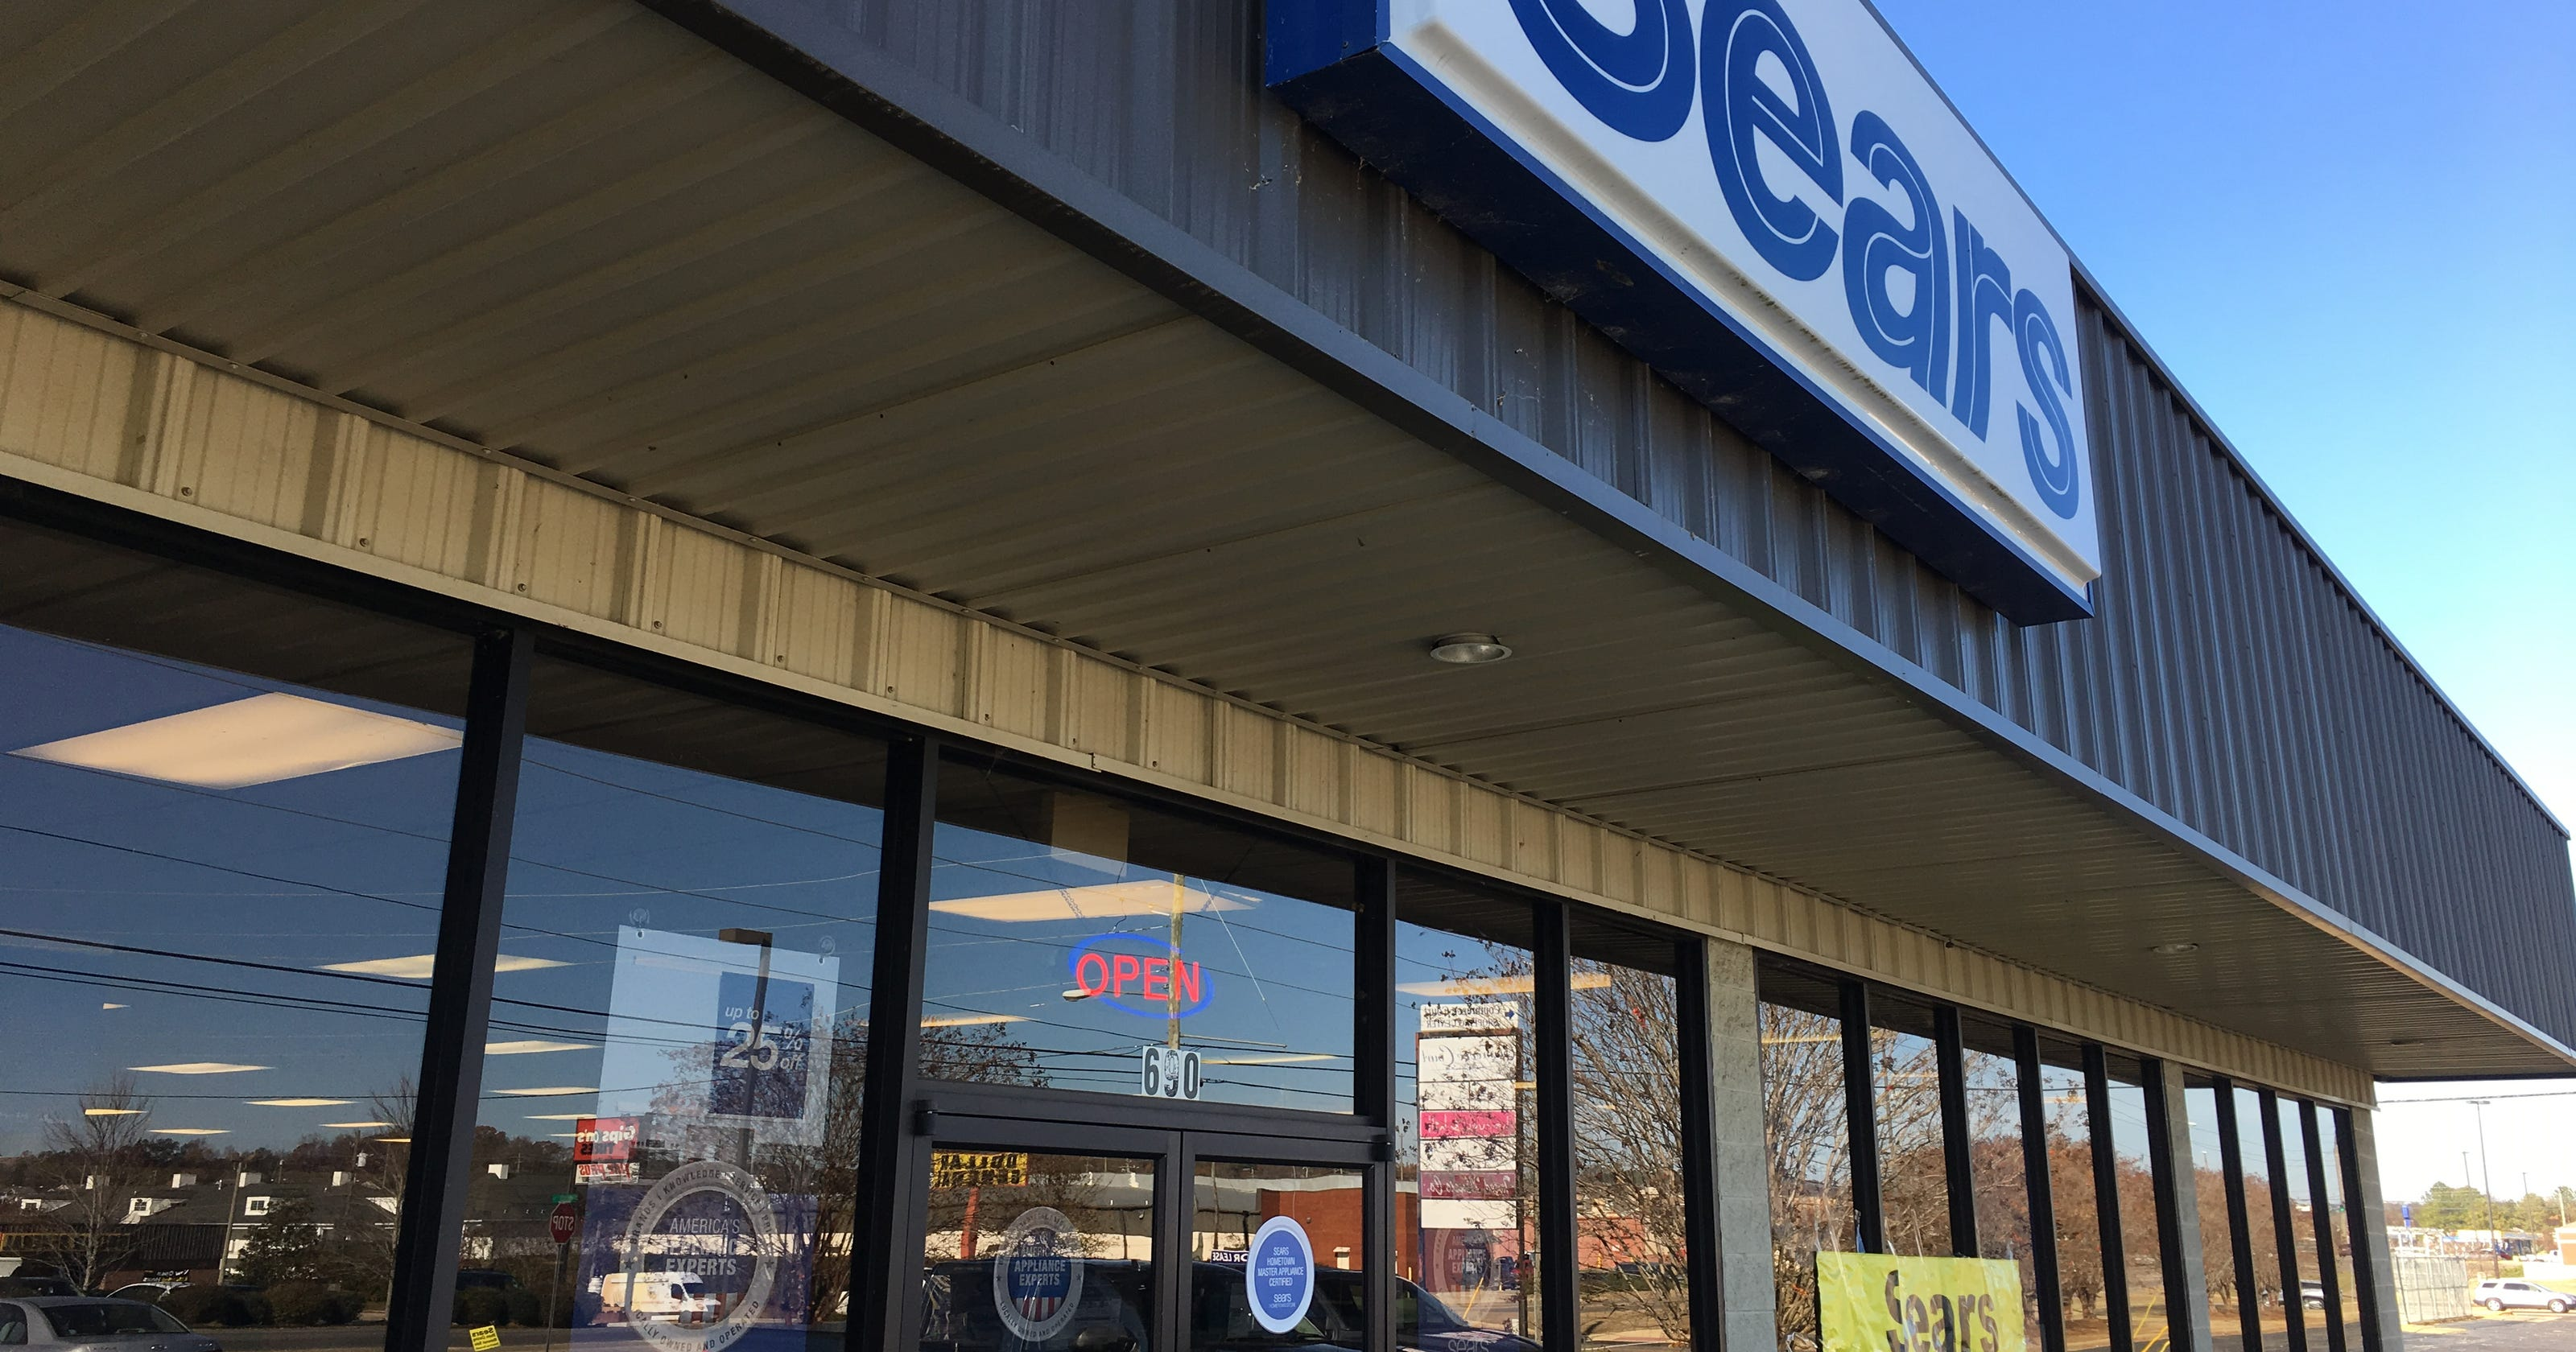 fcd5095bfd30 Prattville Sears store plans to close